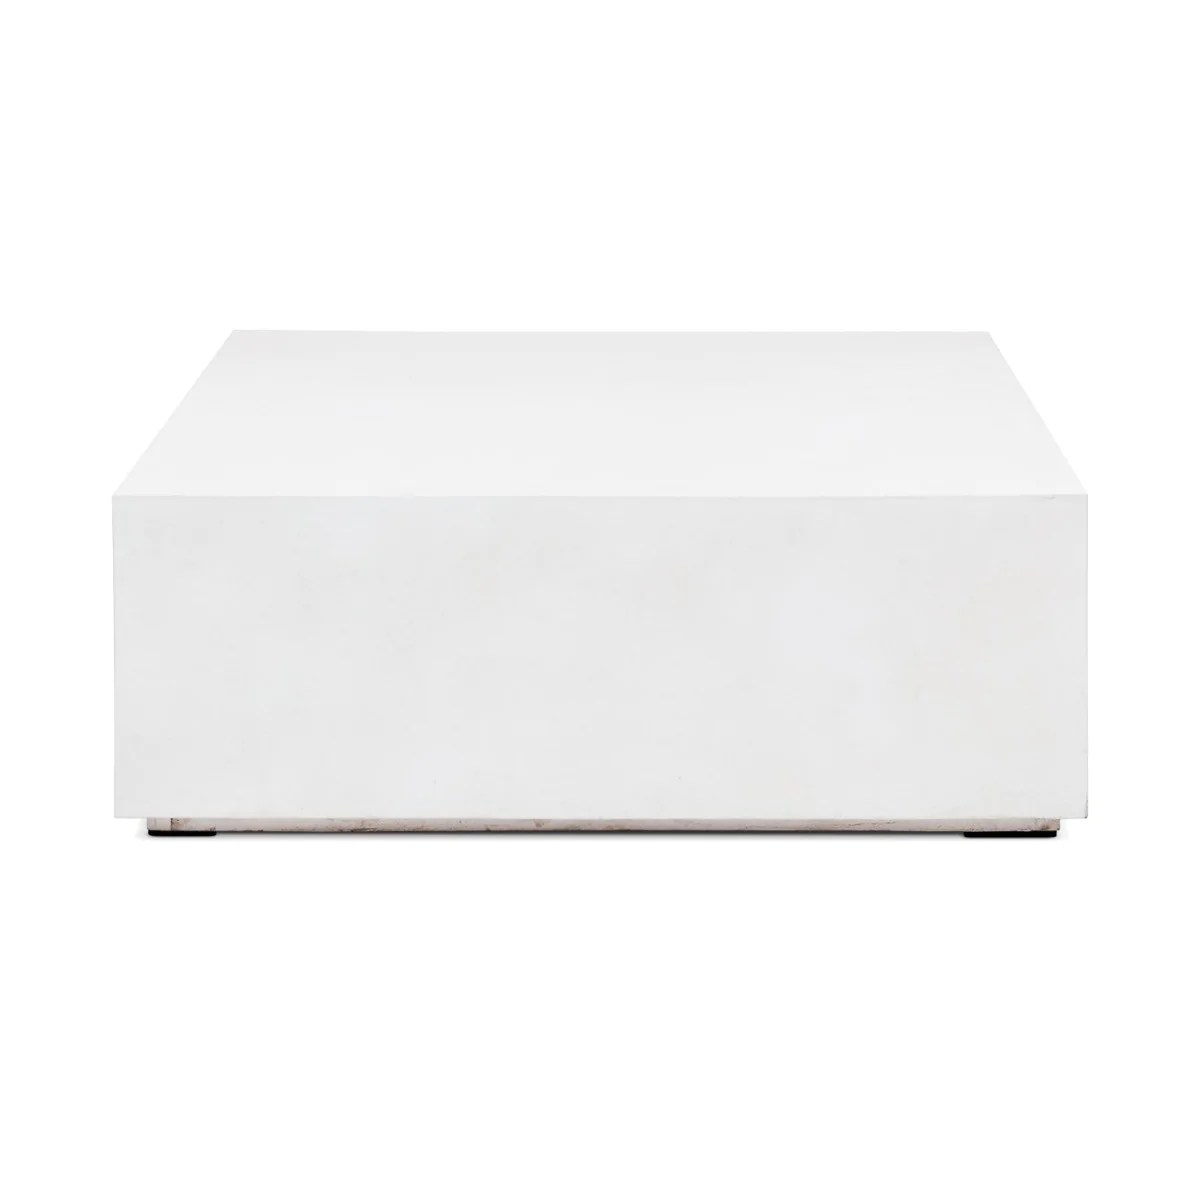 ivory white concrete square block coffee table